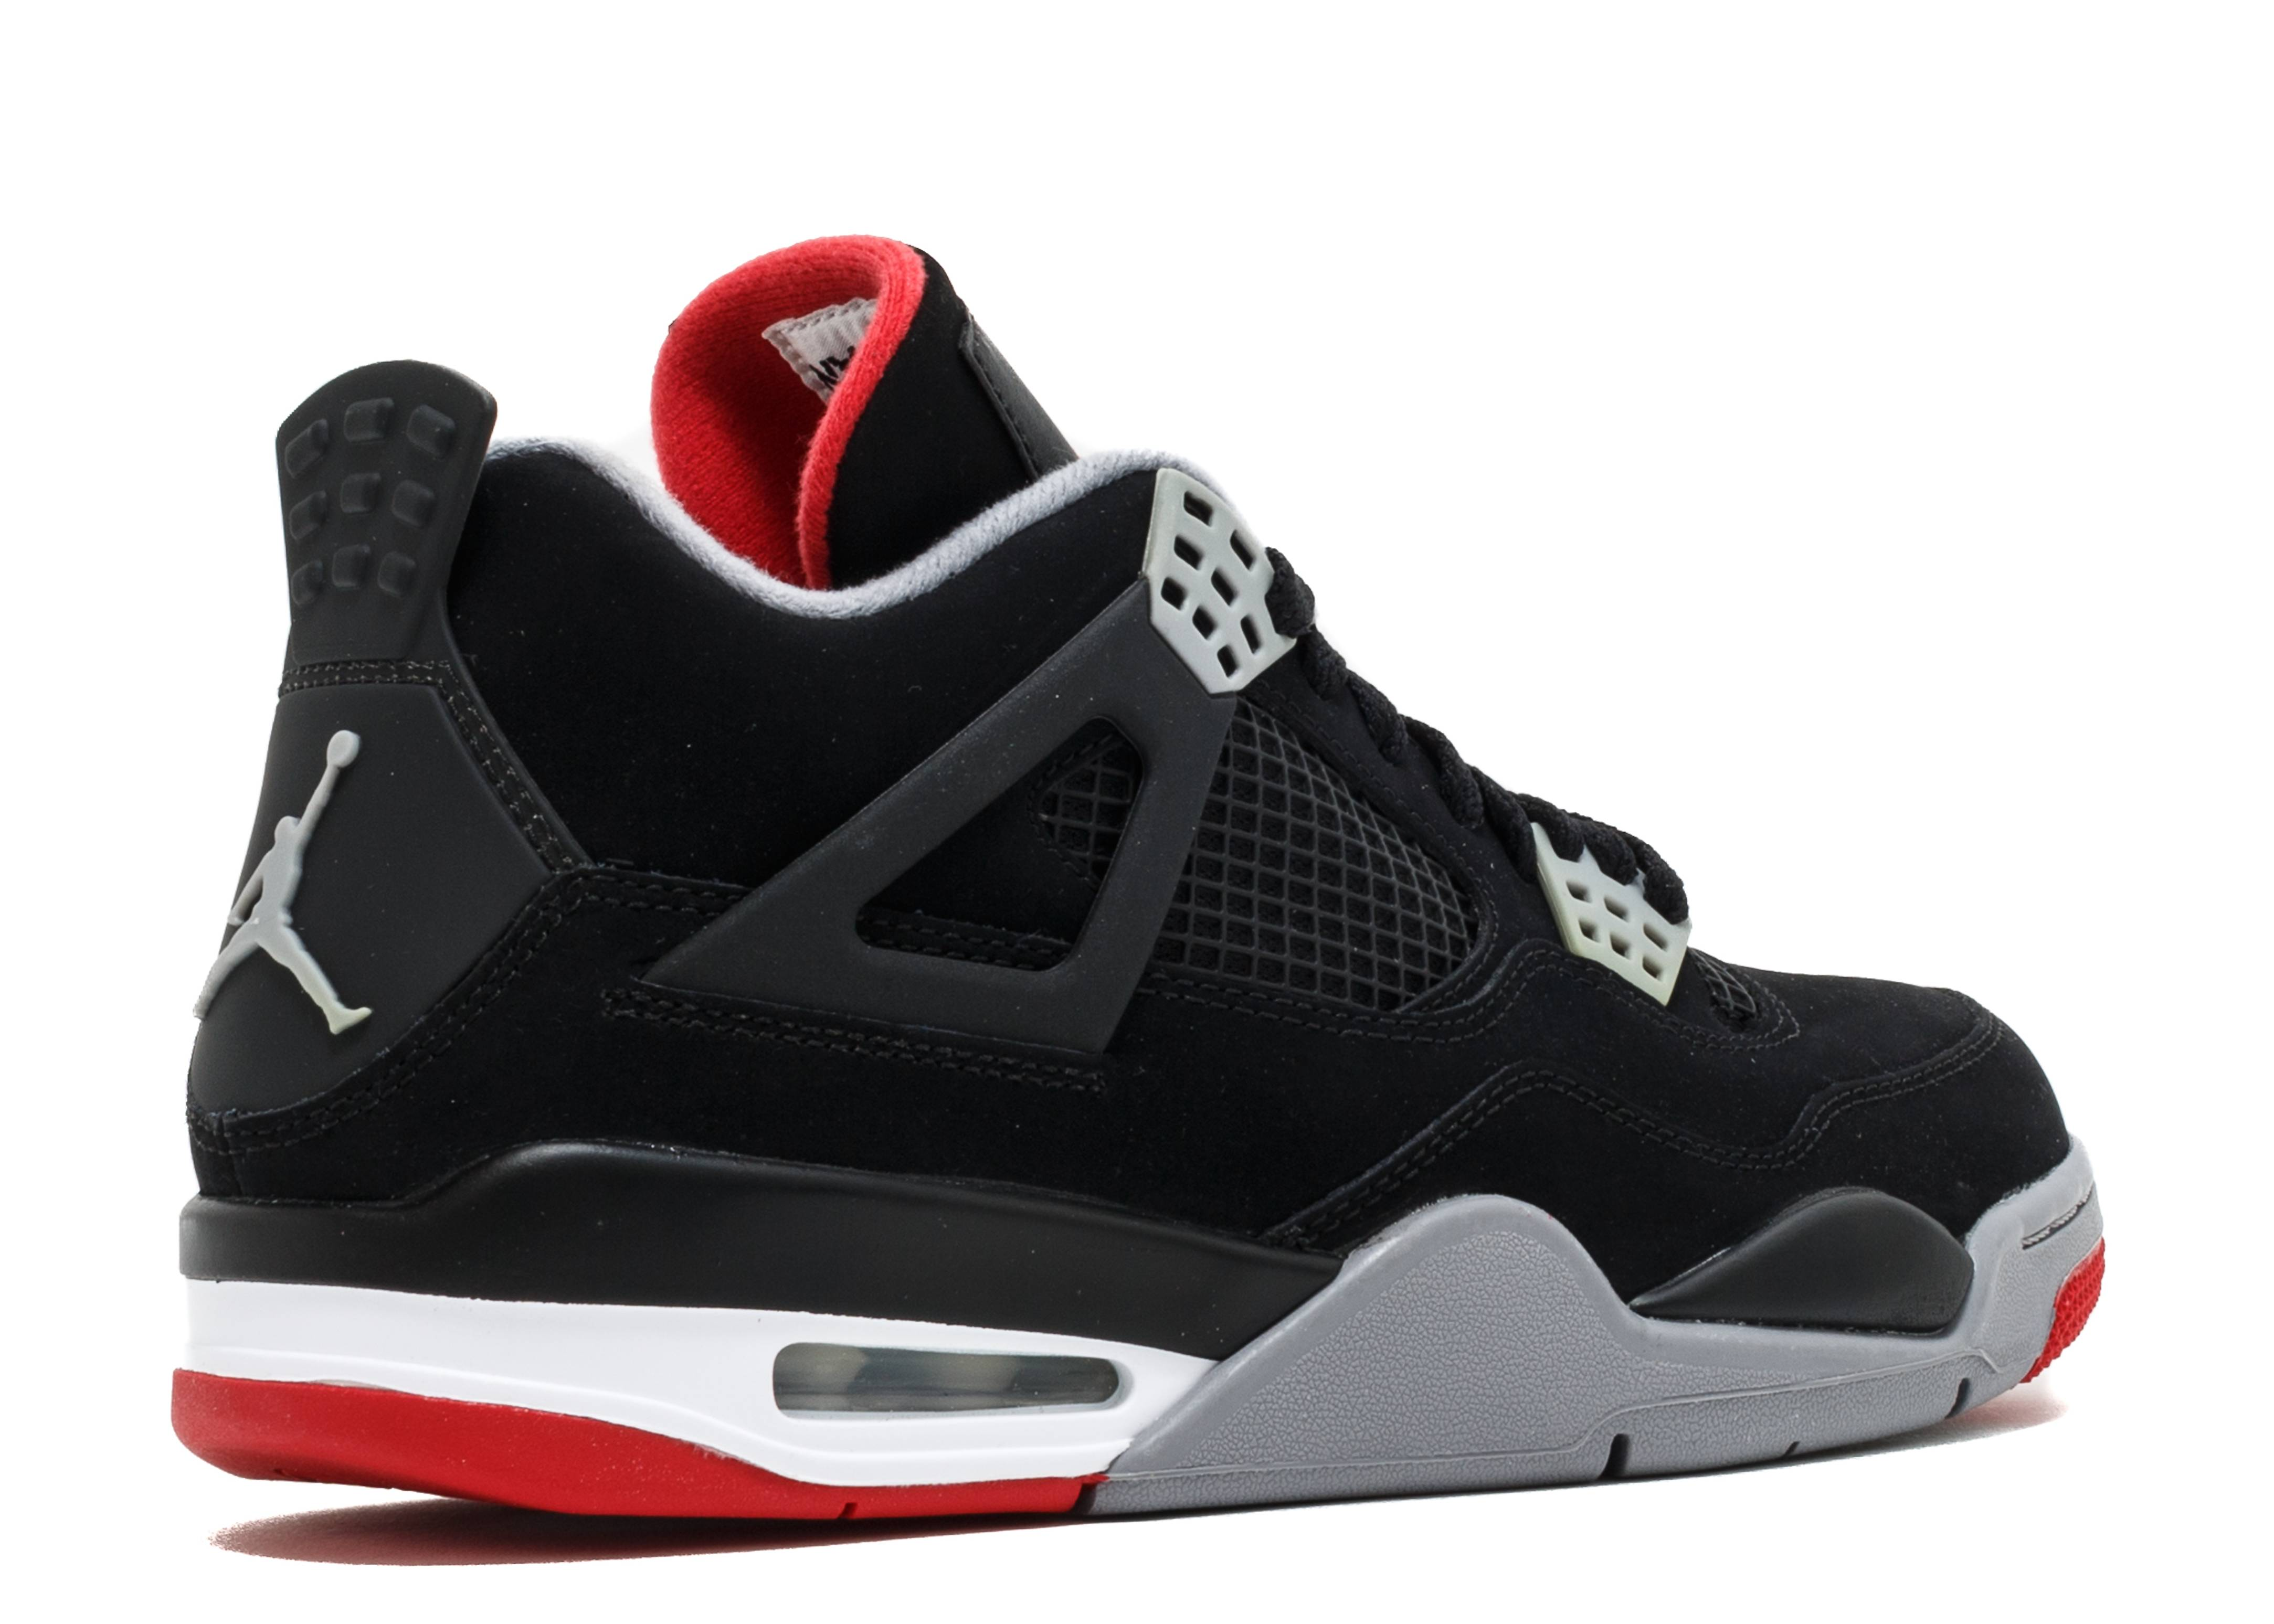 f34b8a901d5 Air Jordan 4 Bred 2012 For Sale Cheap Size 4 Lebron 11 Shoes Kids ...